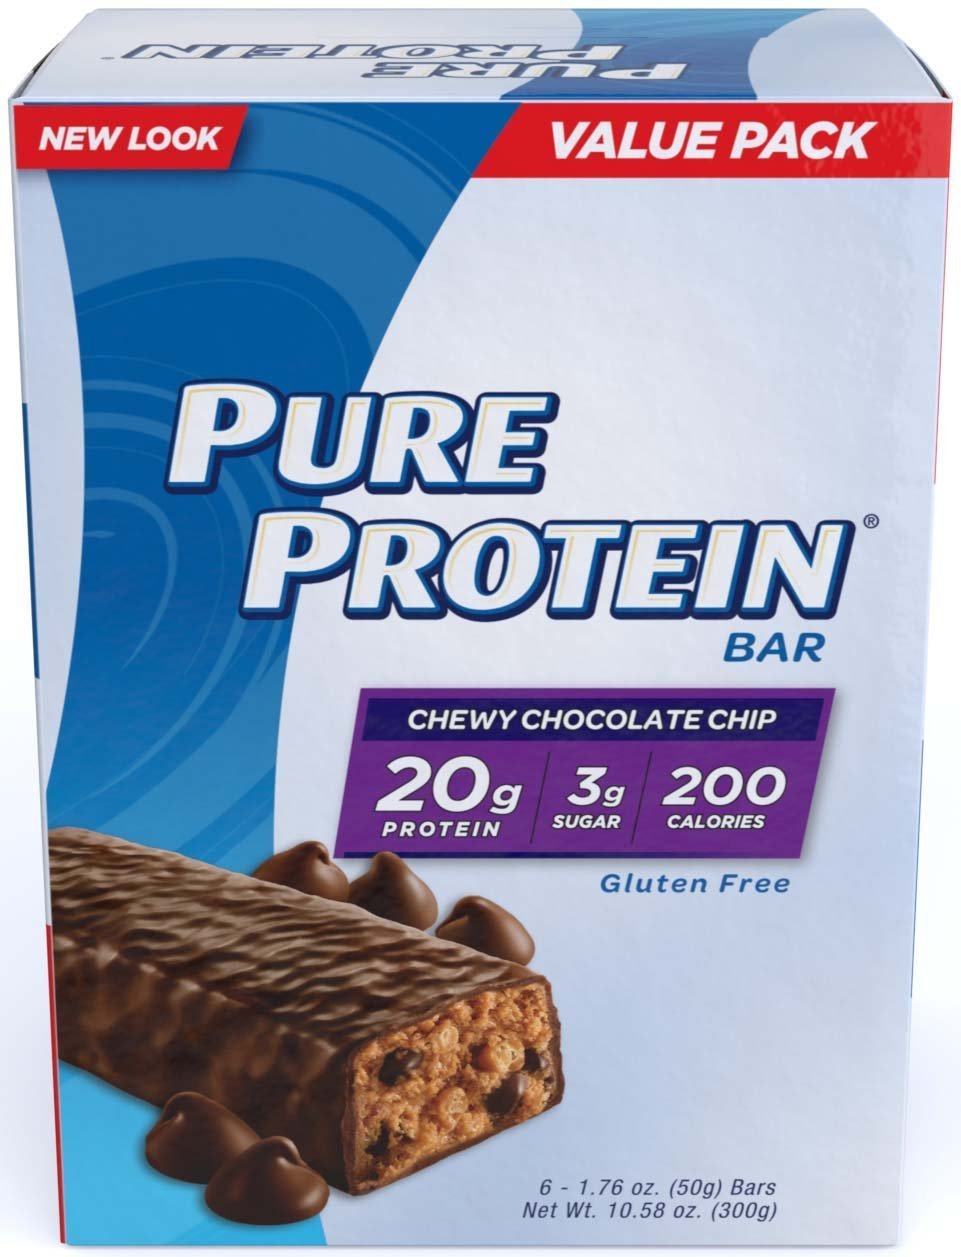 Pure Protein Chewy Chocolate Chip Value Pack, 36 Bars -1.76 oz